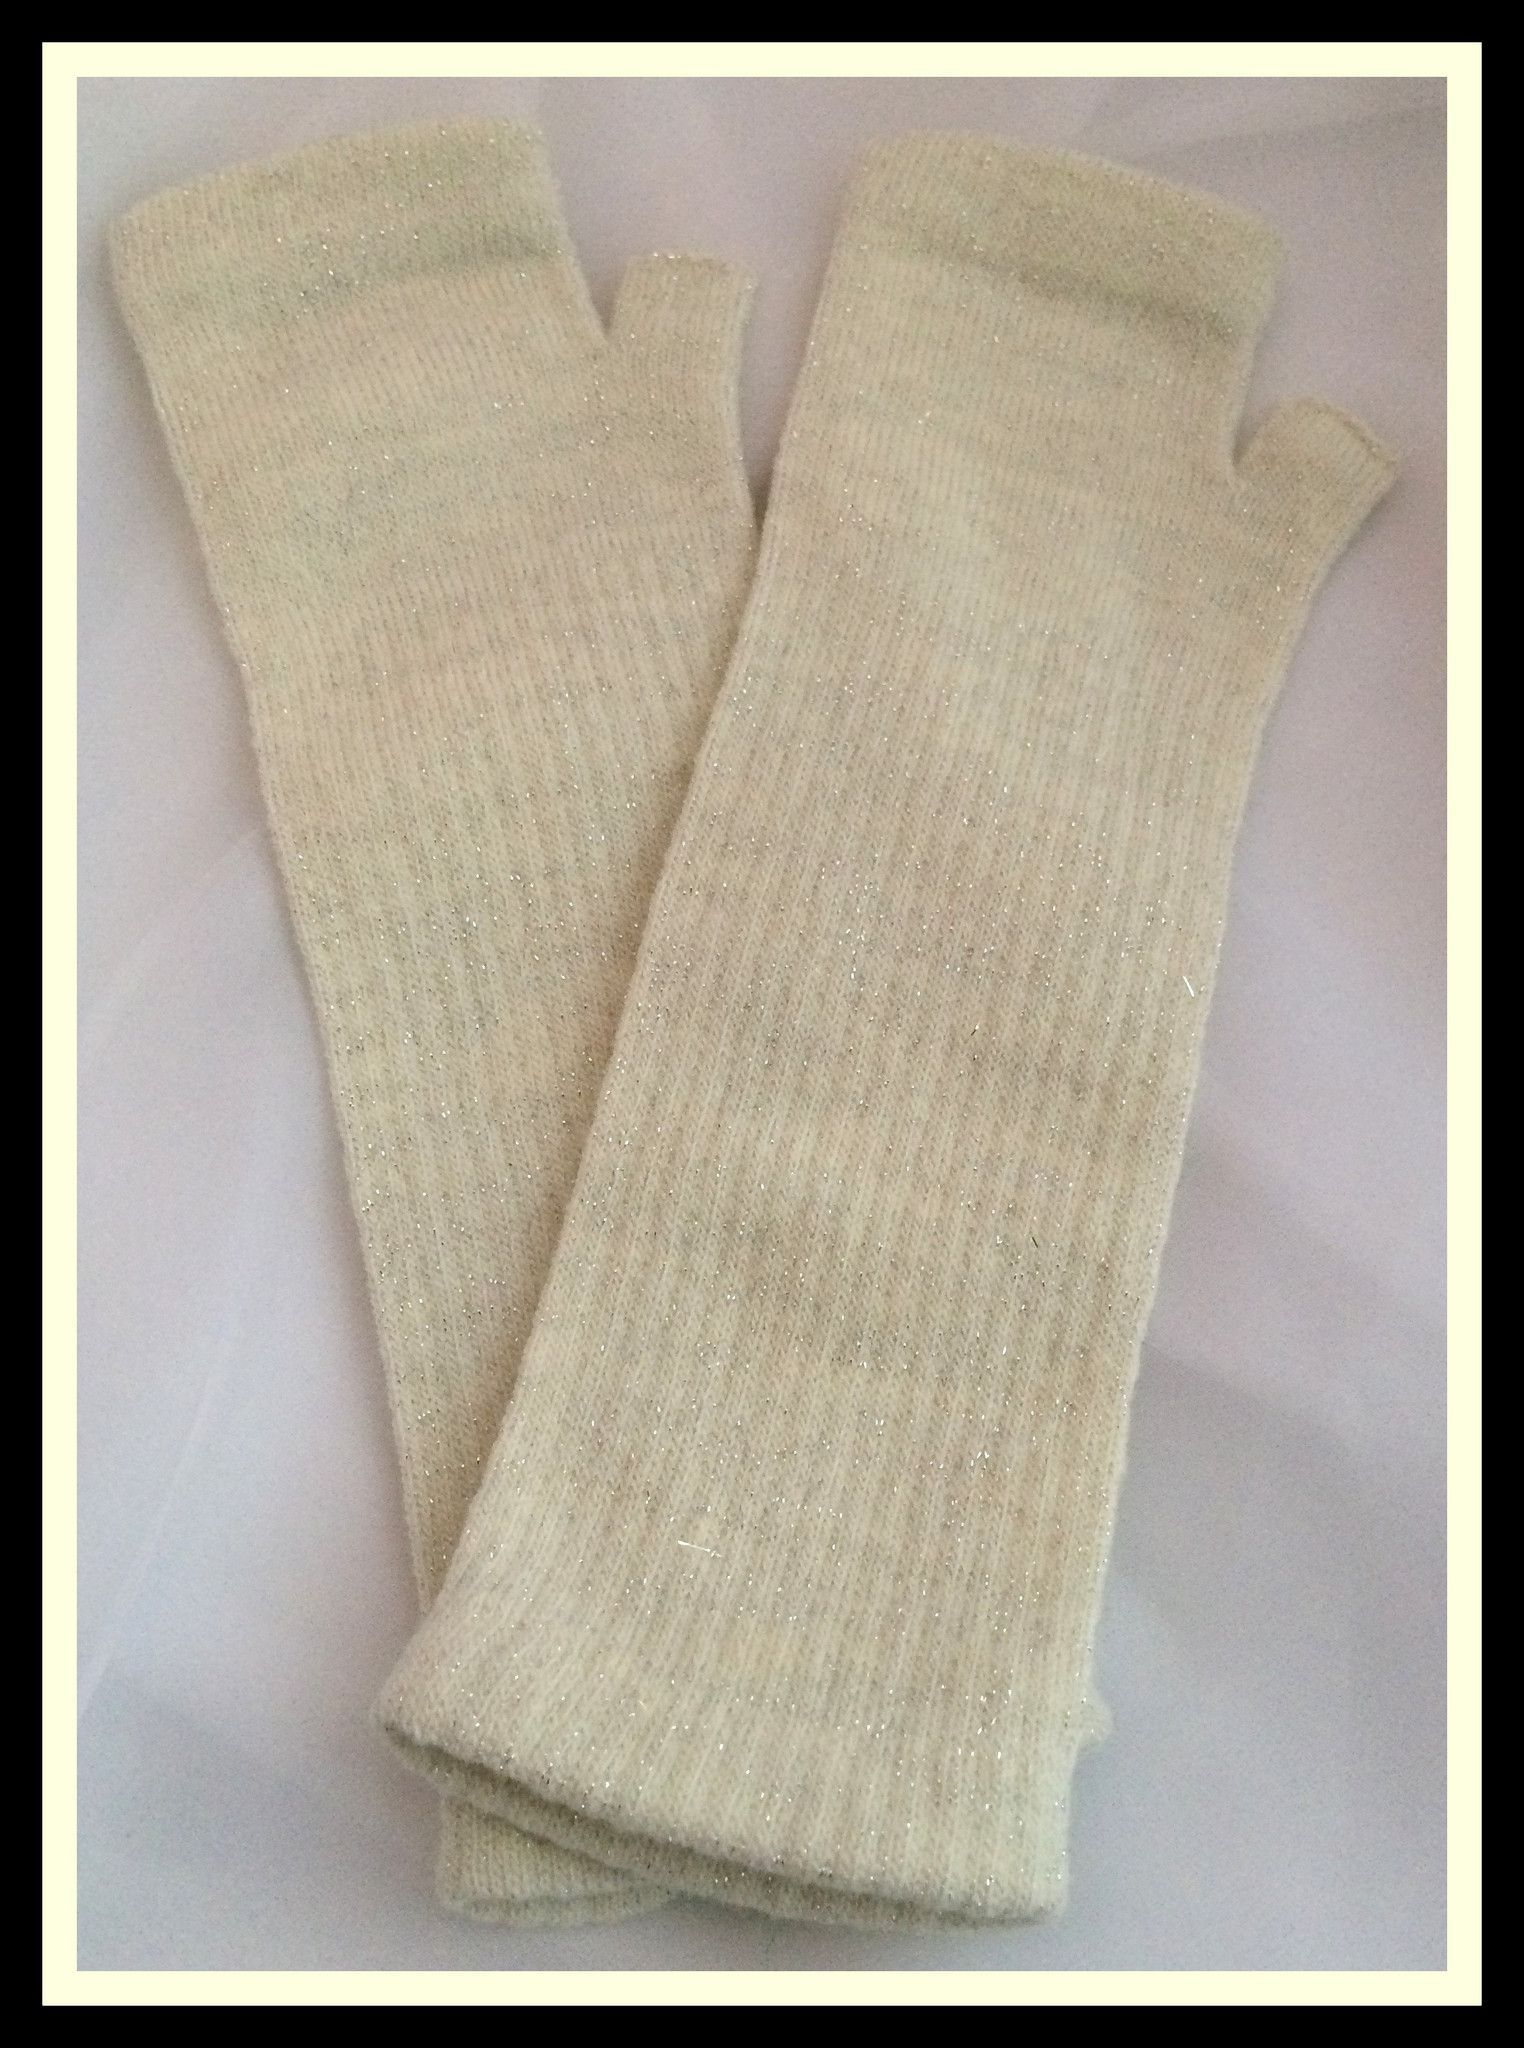 White Knit Fingerless Gloves | Attire | Pinterest